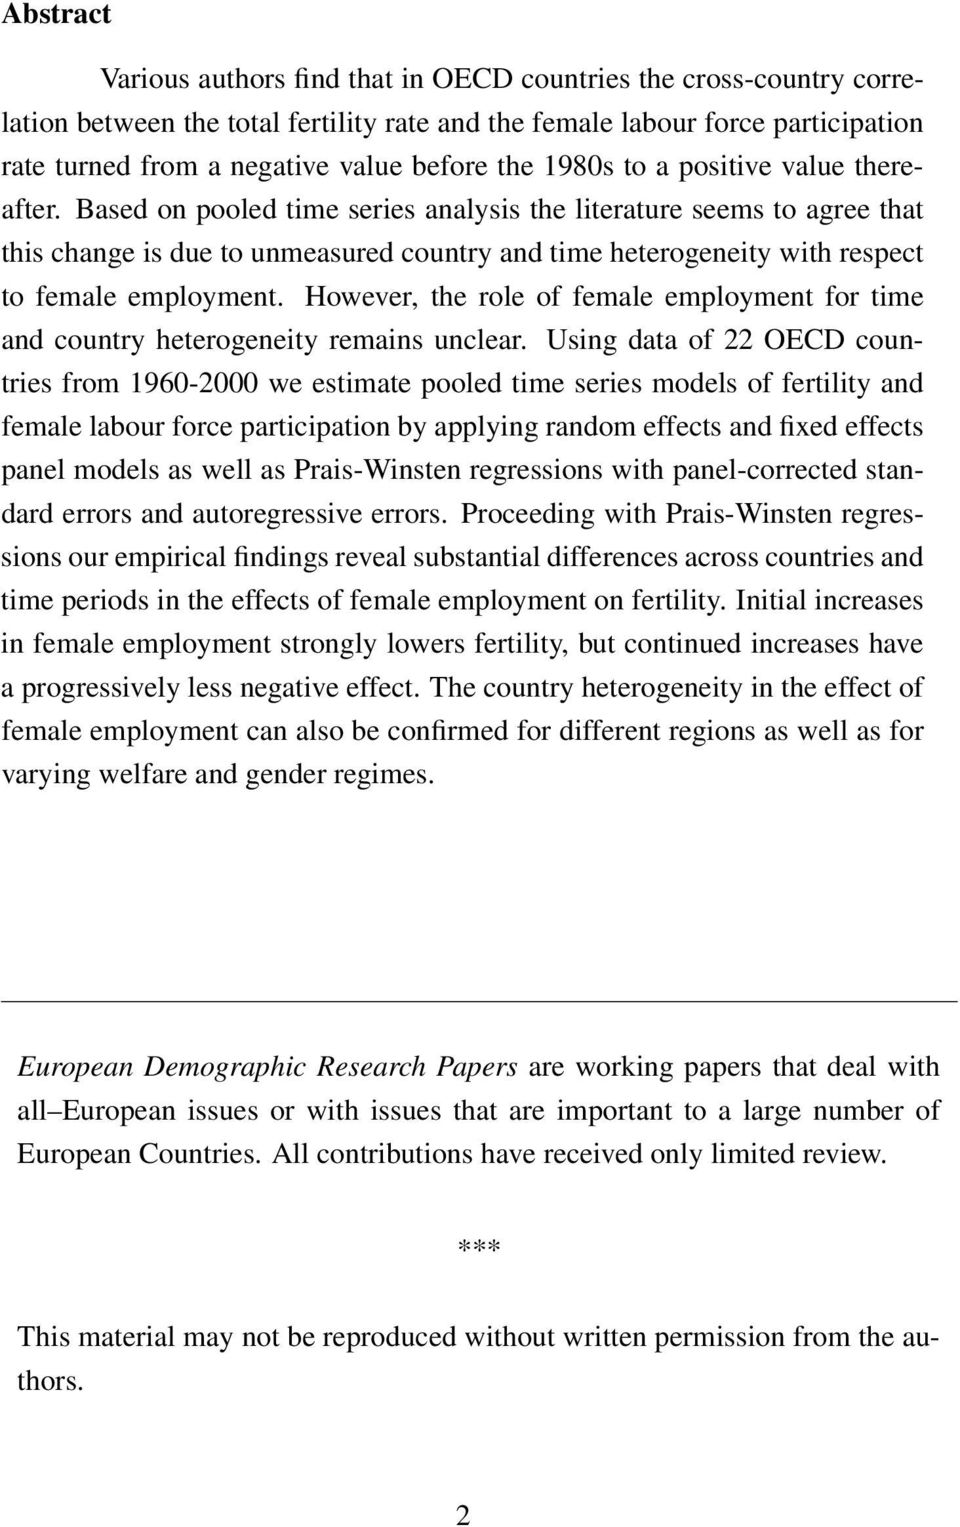 Based on pooled time series analysis the literature seems to agree that this change is due to unmeasured country and time heterogeneity with respect to female employment.